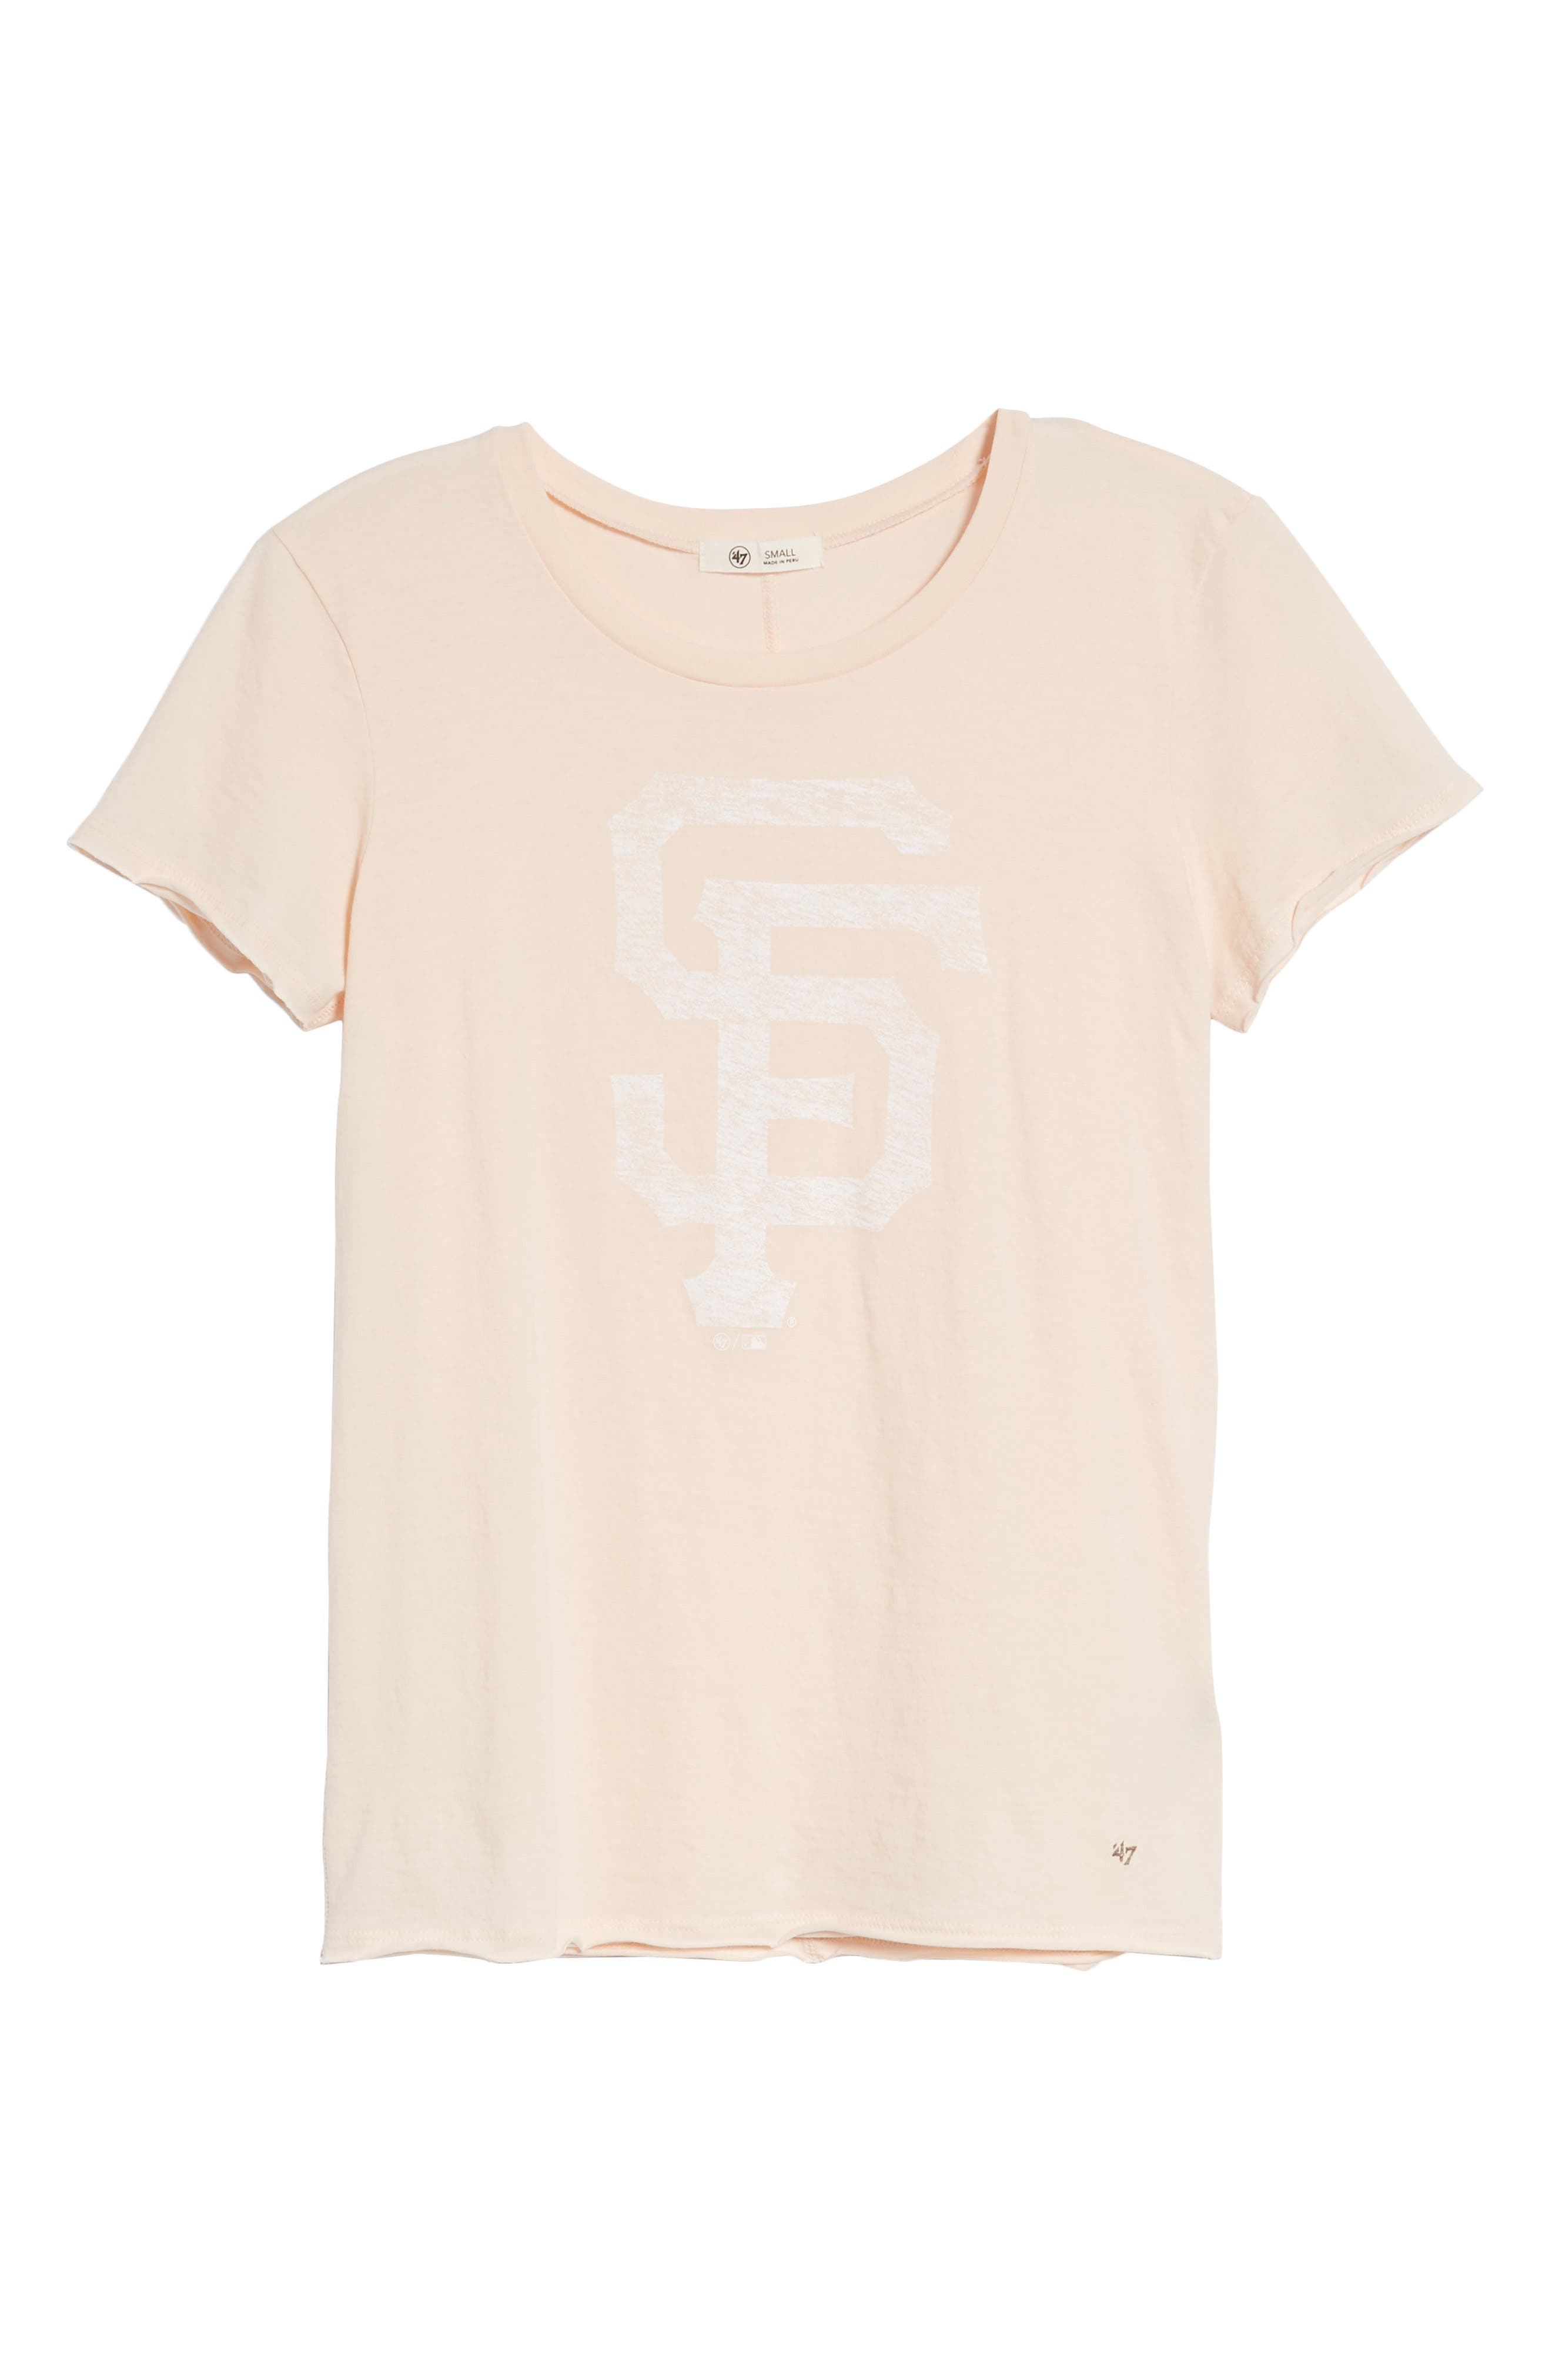 San Francisco Giants Fader Letter Tee,                             Alternate thumbnail 7, color,                             650